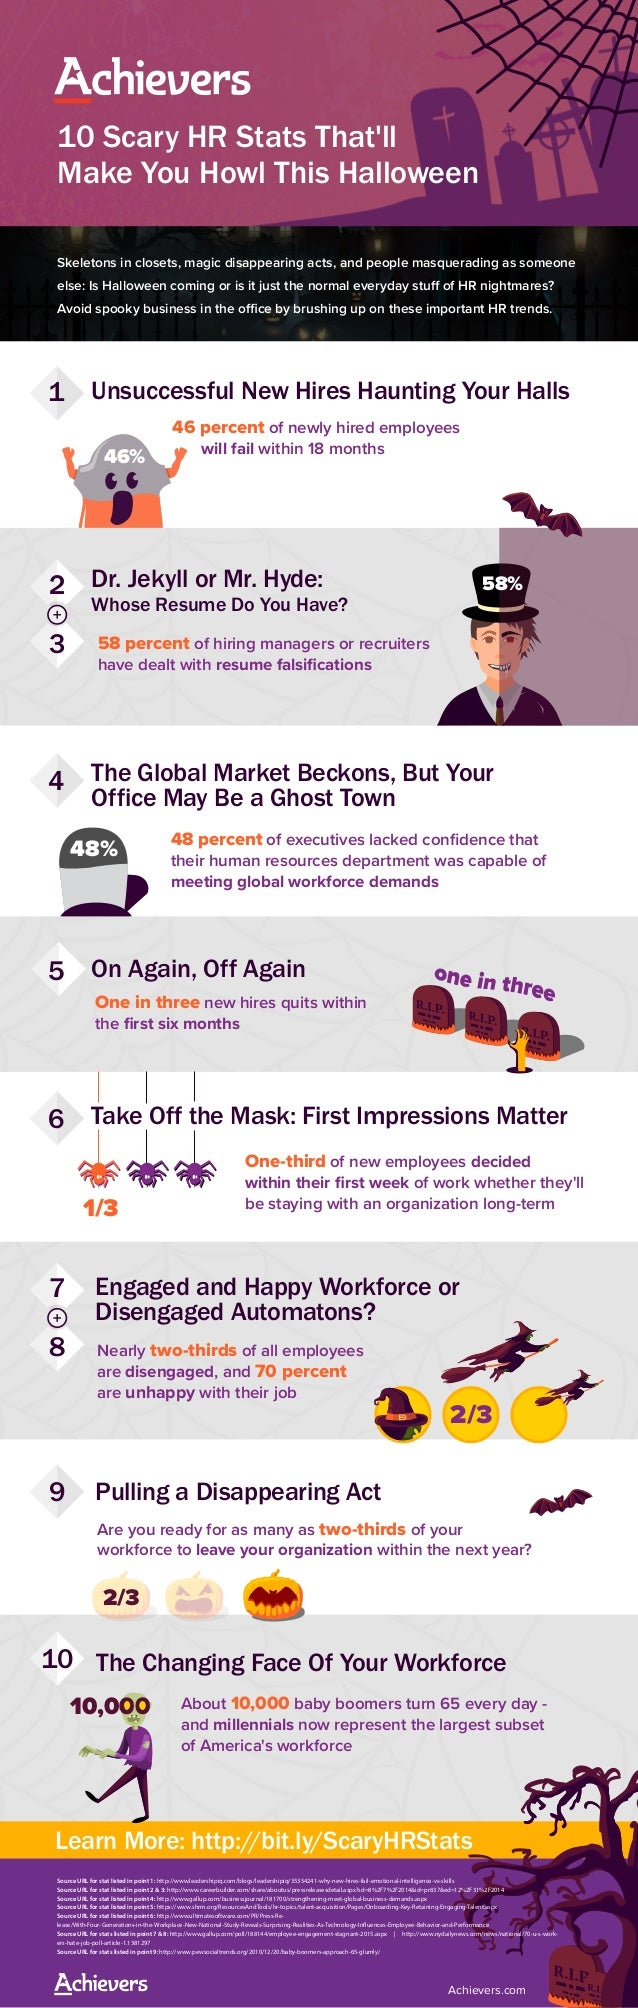 48% 10 Scary HR Stats That'll Make You Howl This Halloween Skeletons in closets, magic disappearing acts, and people masqu...